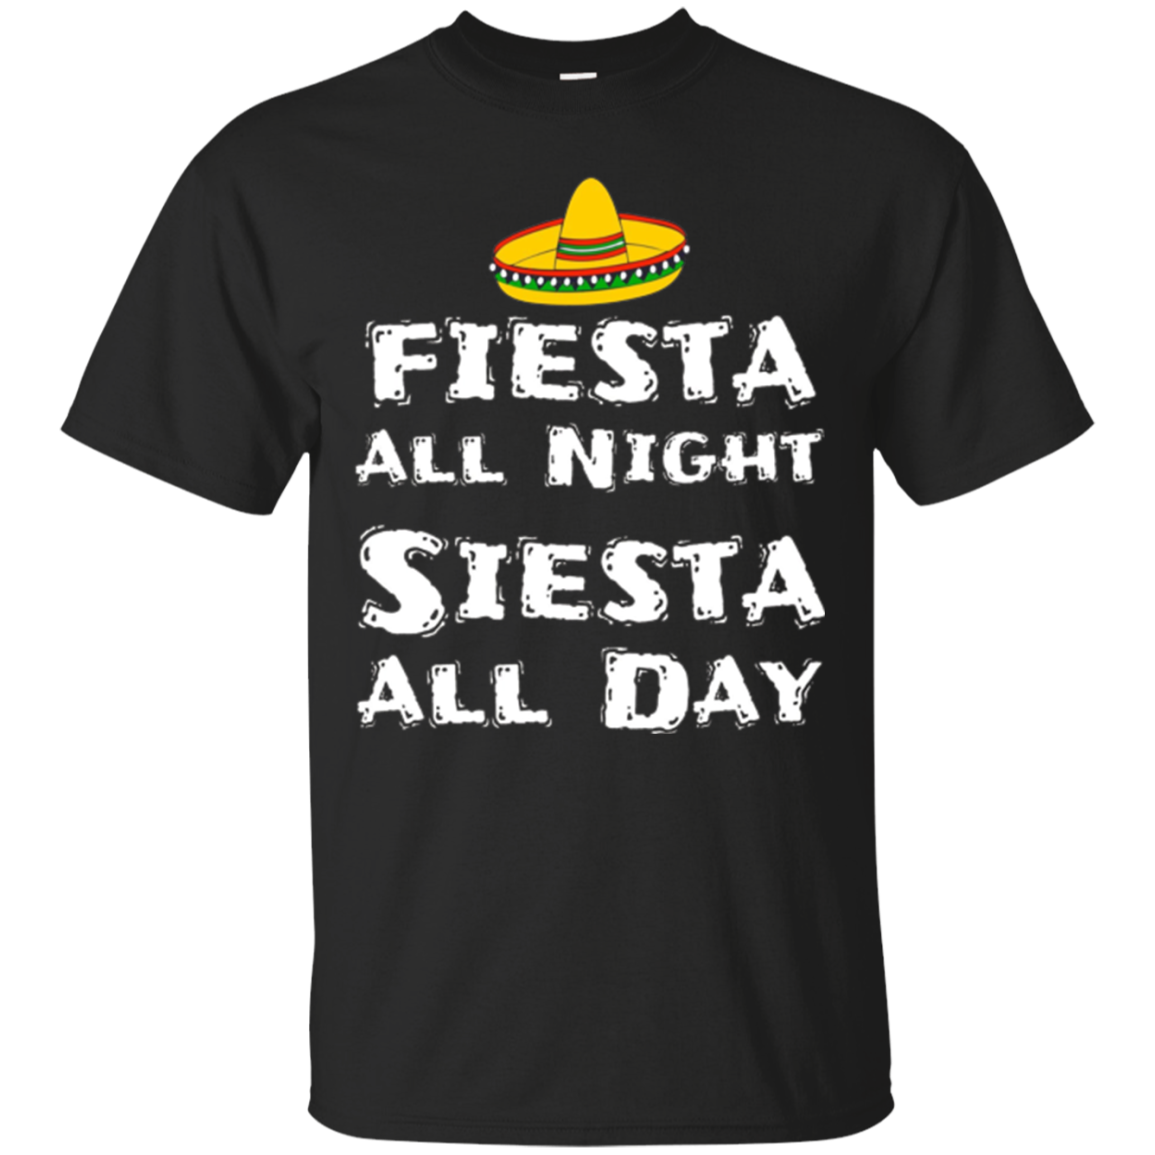 Cinco De Mayo Shirt For Men Women Fiesta Night Siesta Day